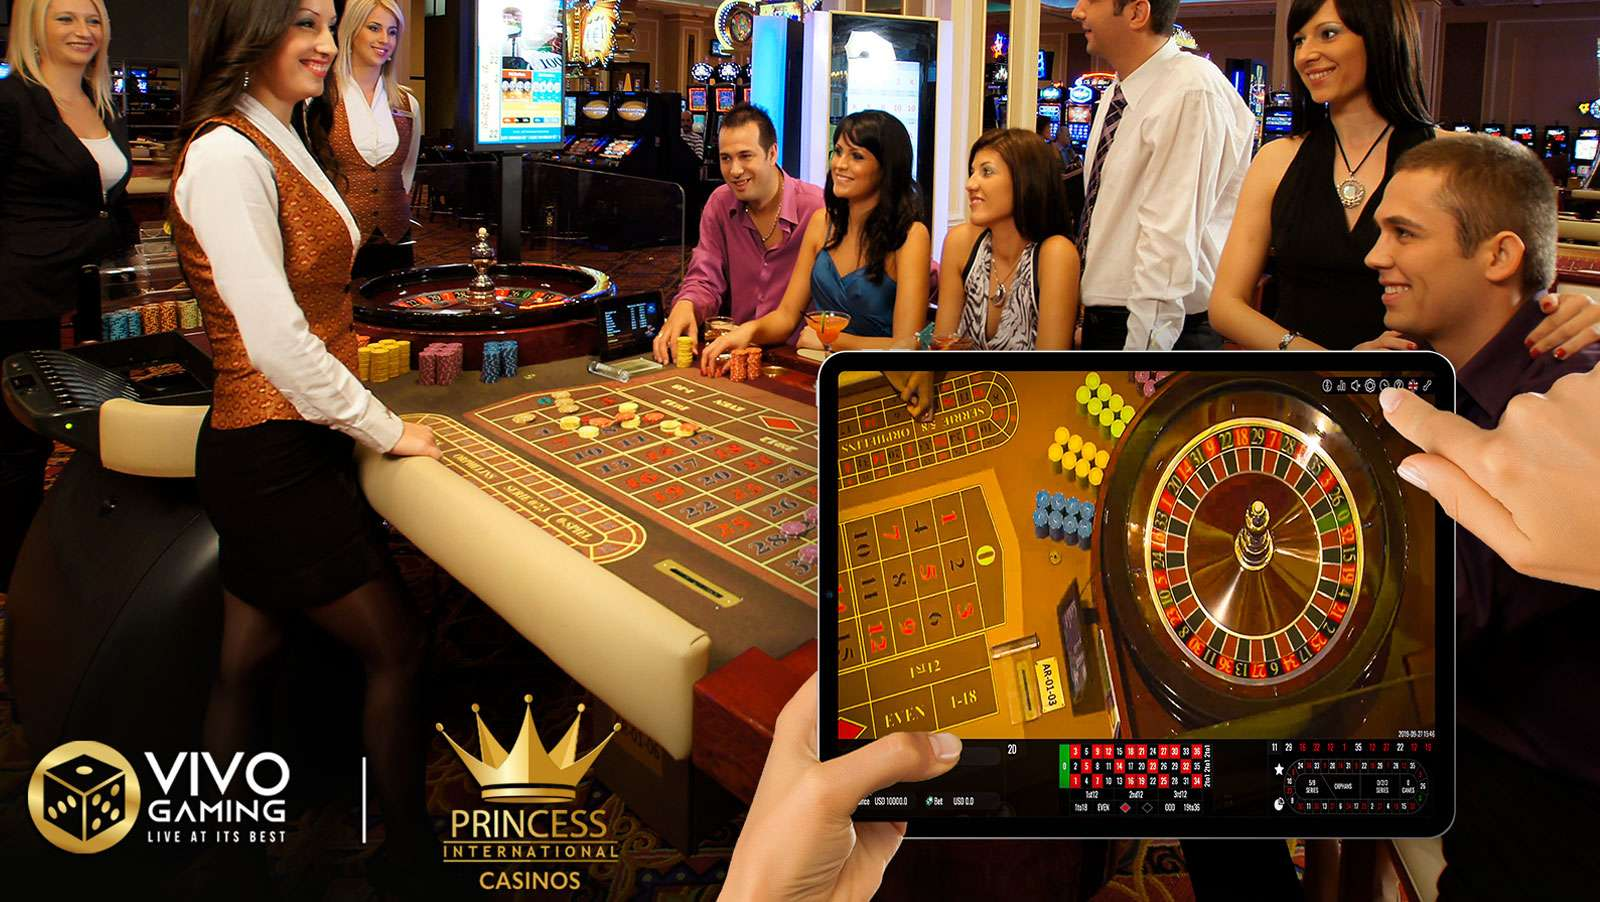 Vivo Gaming and Princess Int. Casinos ally to offer a real land-based casino experience